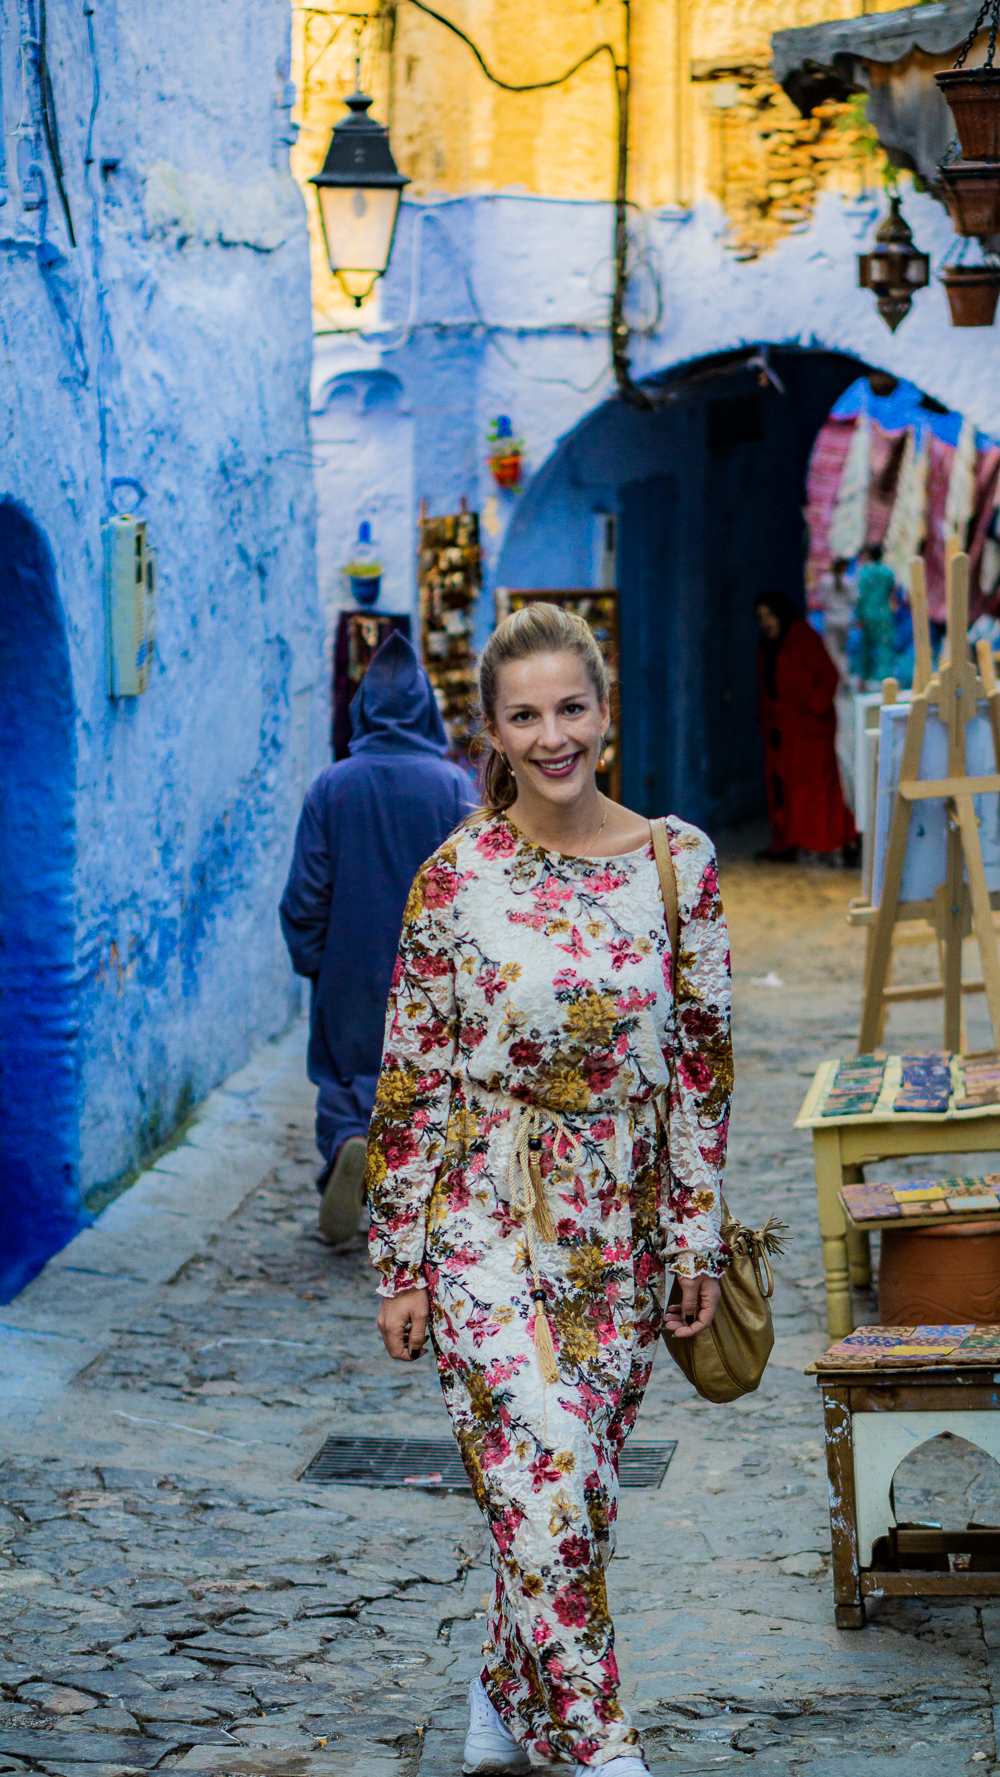 Dani on Streets of Chefchaouen, Morocco